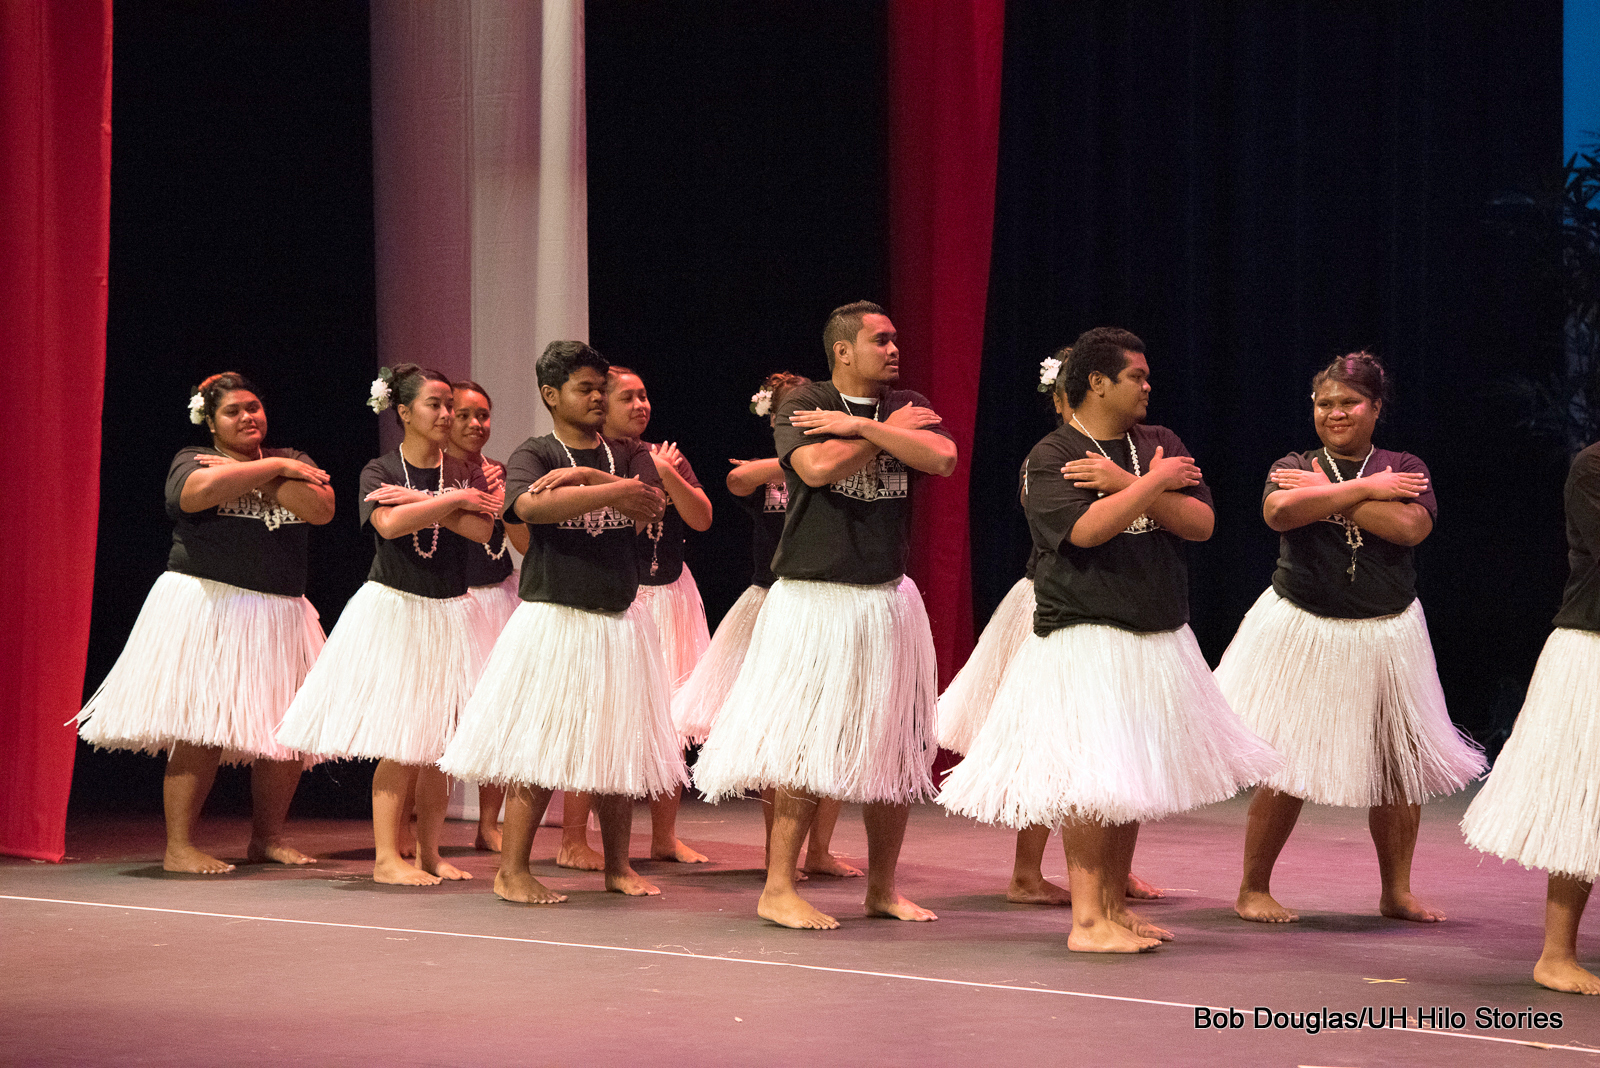 Large group of women and men, white grass skirts, black t-shirts